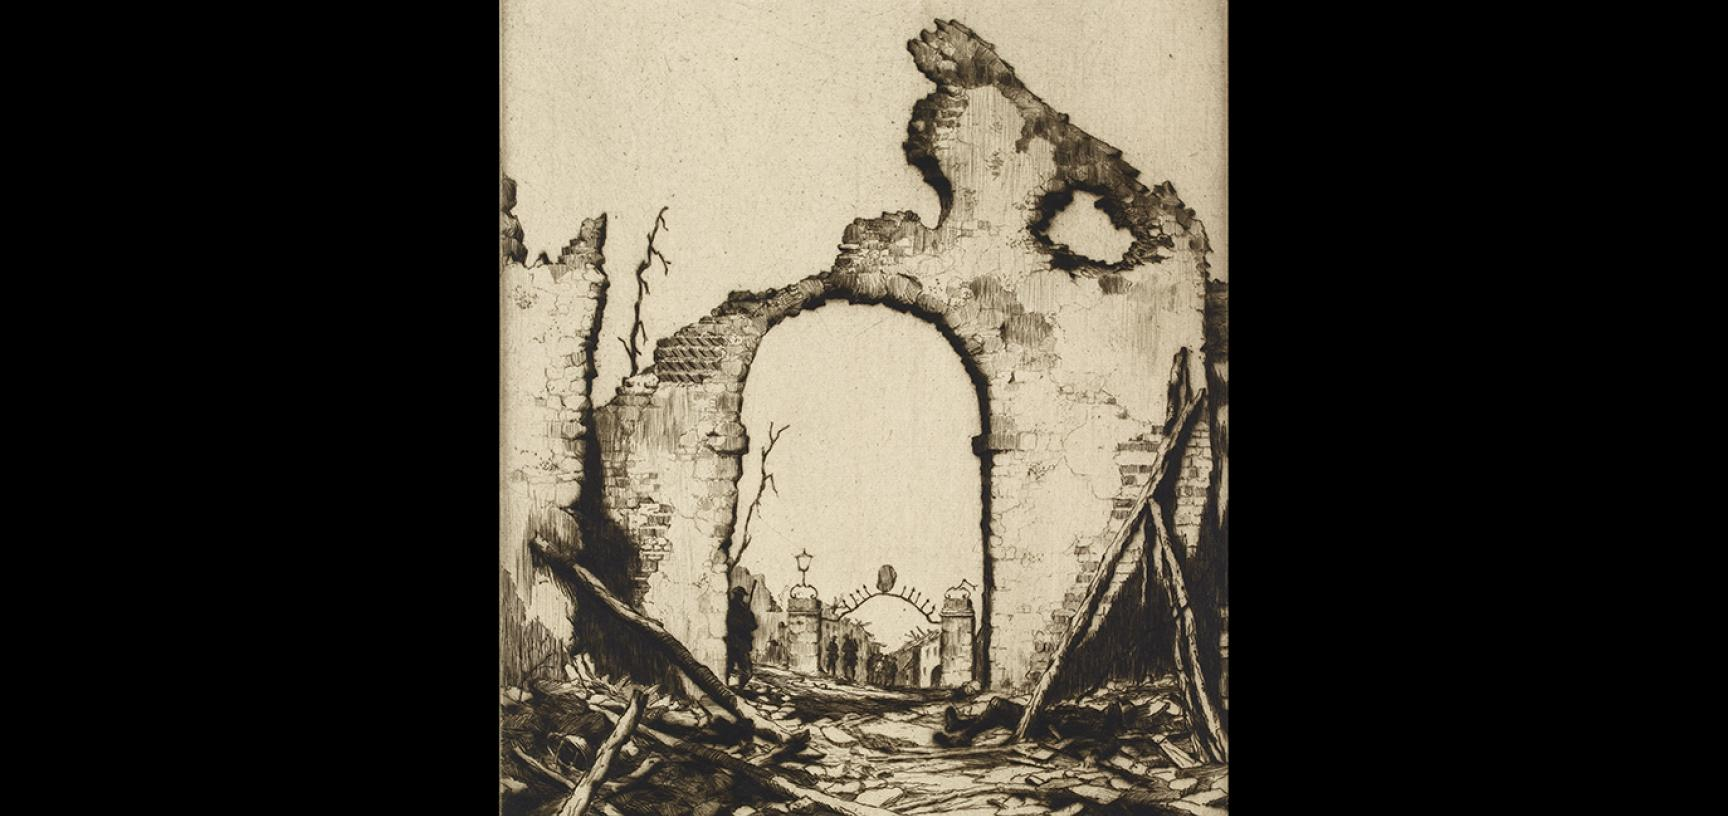 2. Martin Hardie, The Ruins of Nervesa, 1918–1919 © Ashmolean Museum, Presented by Mrs Martin Hardie, the artist's widow, WA1965.40.36